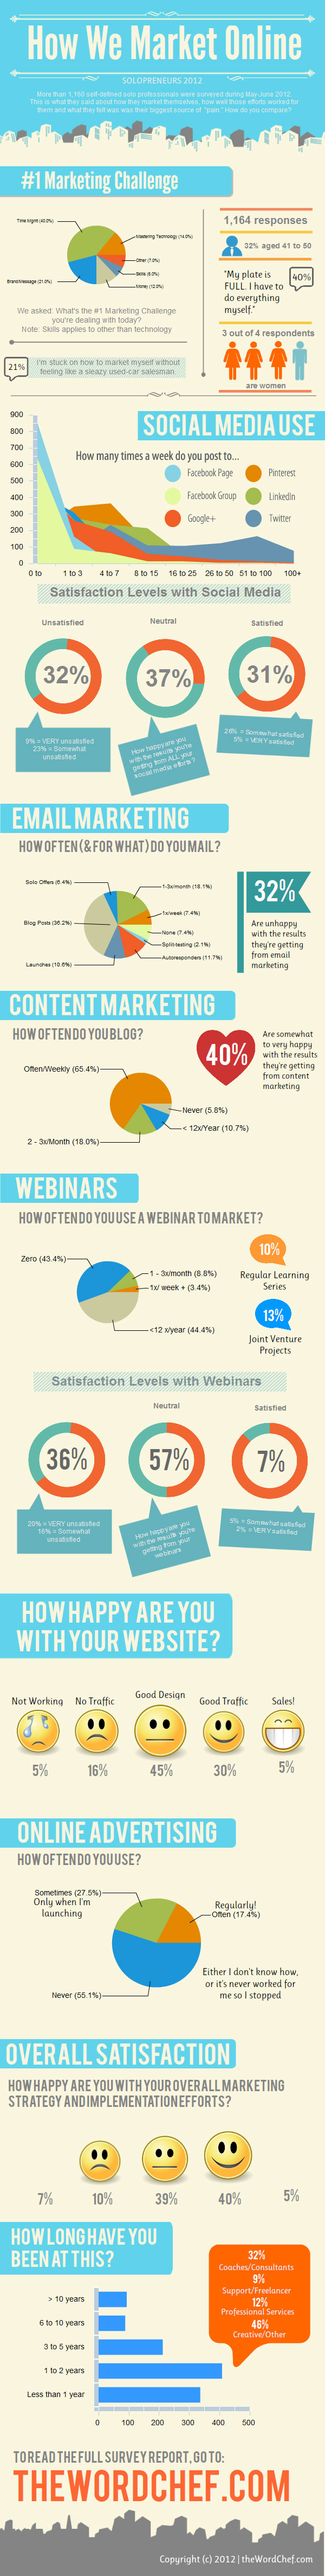 Solopreneurs-Online-Marketing-Survey-Infographic